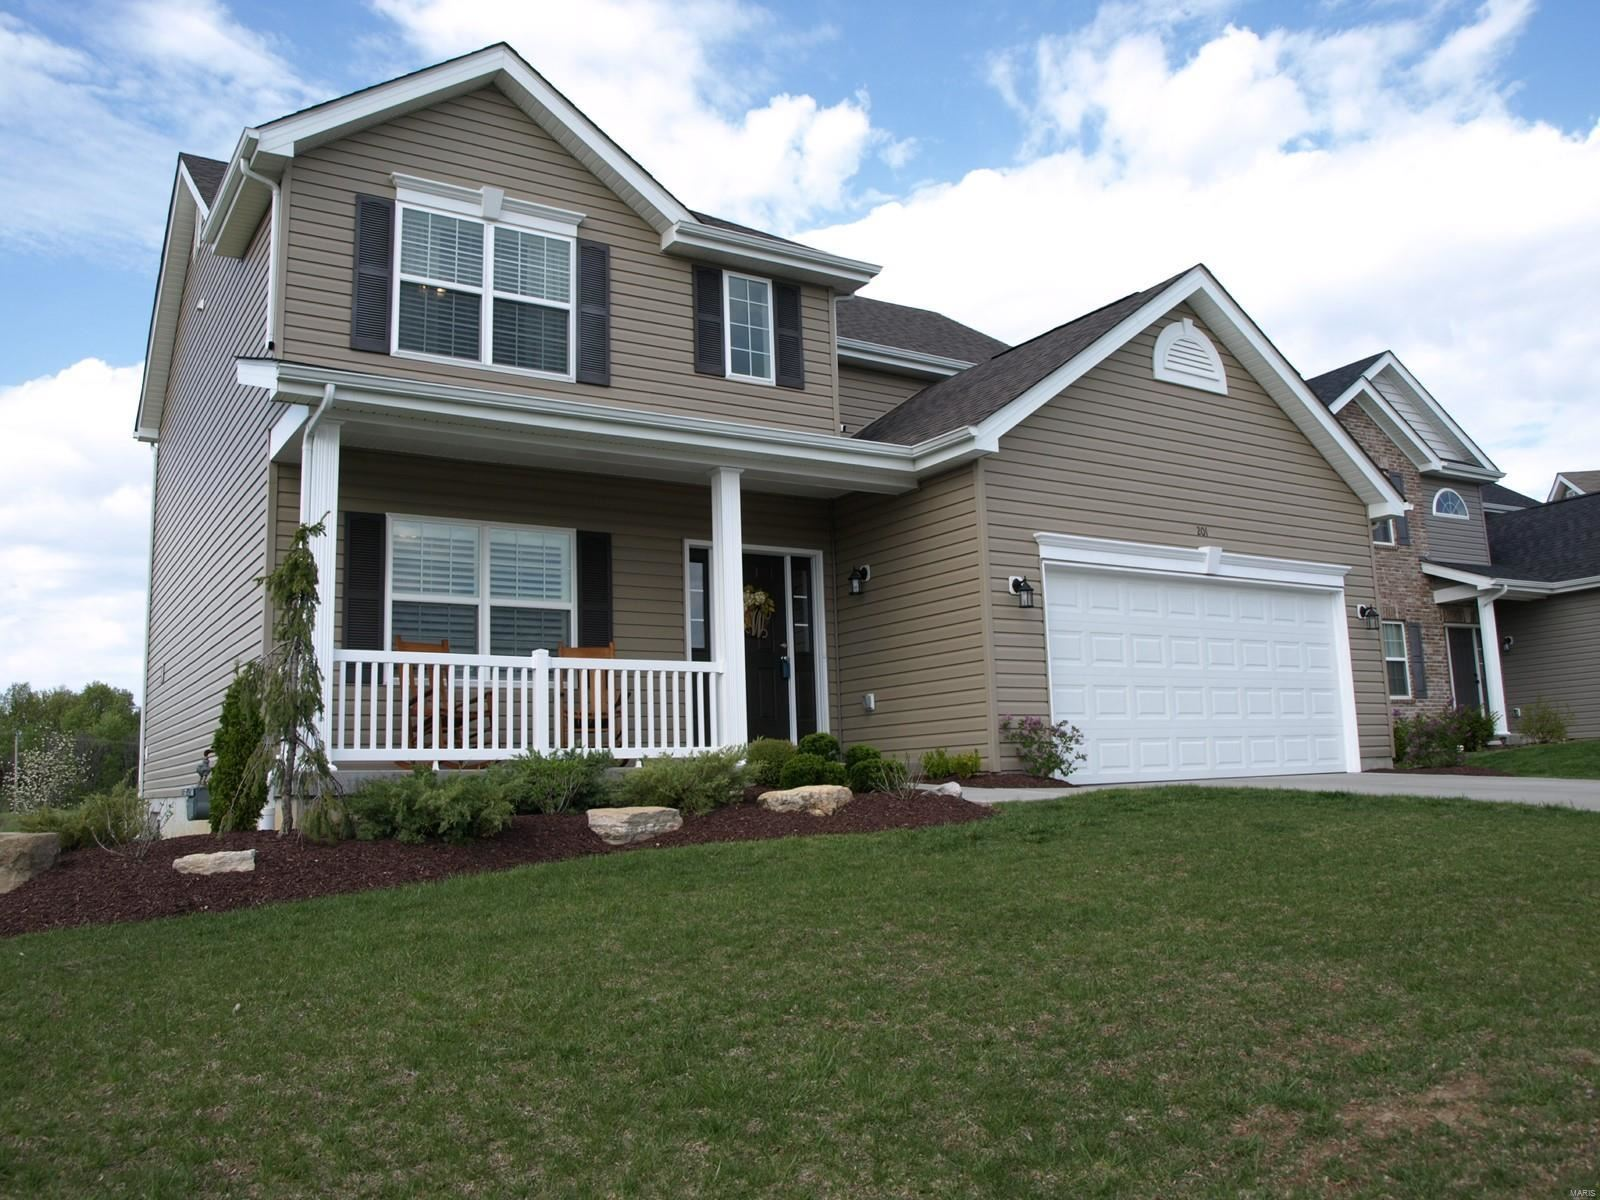 201 East Cannon Spur Court, OFallon, MO 63366 - MLS#: 20021925